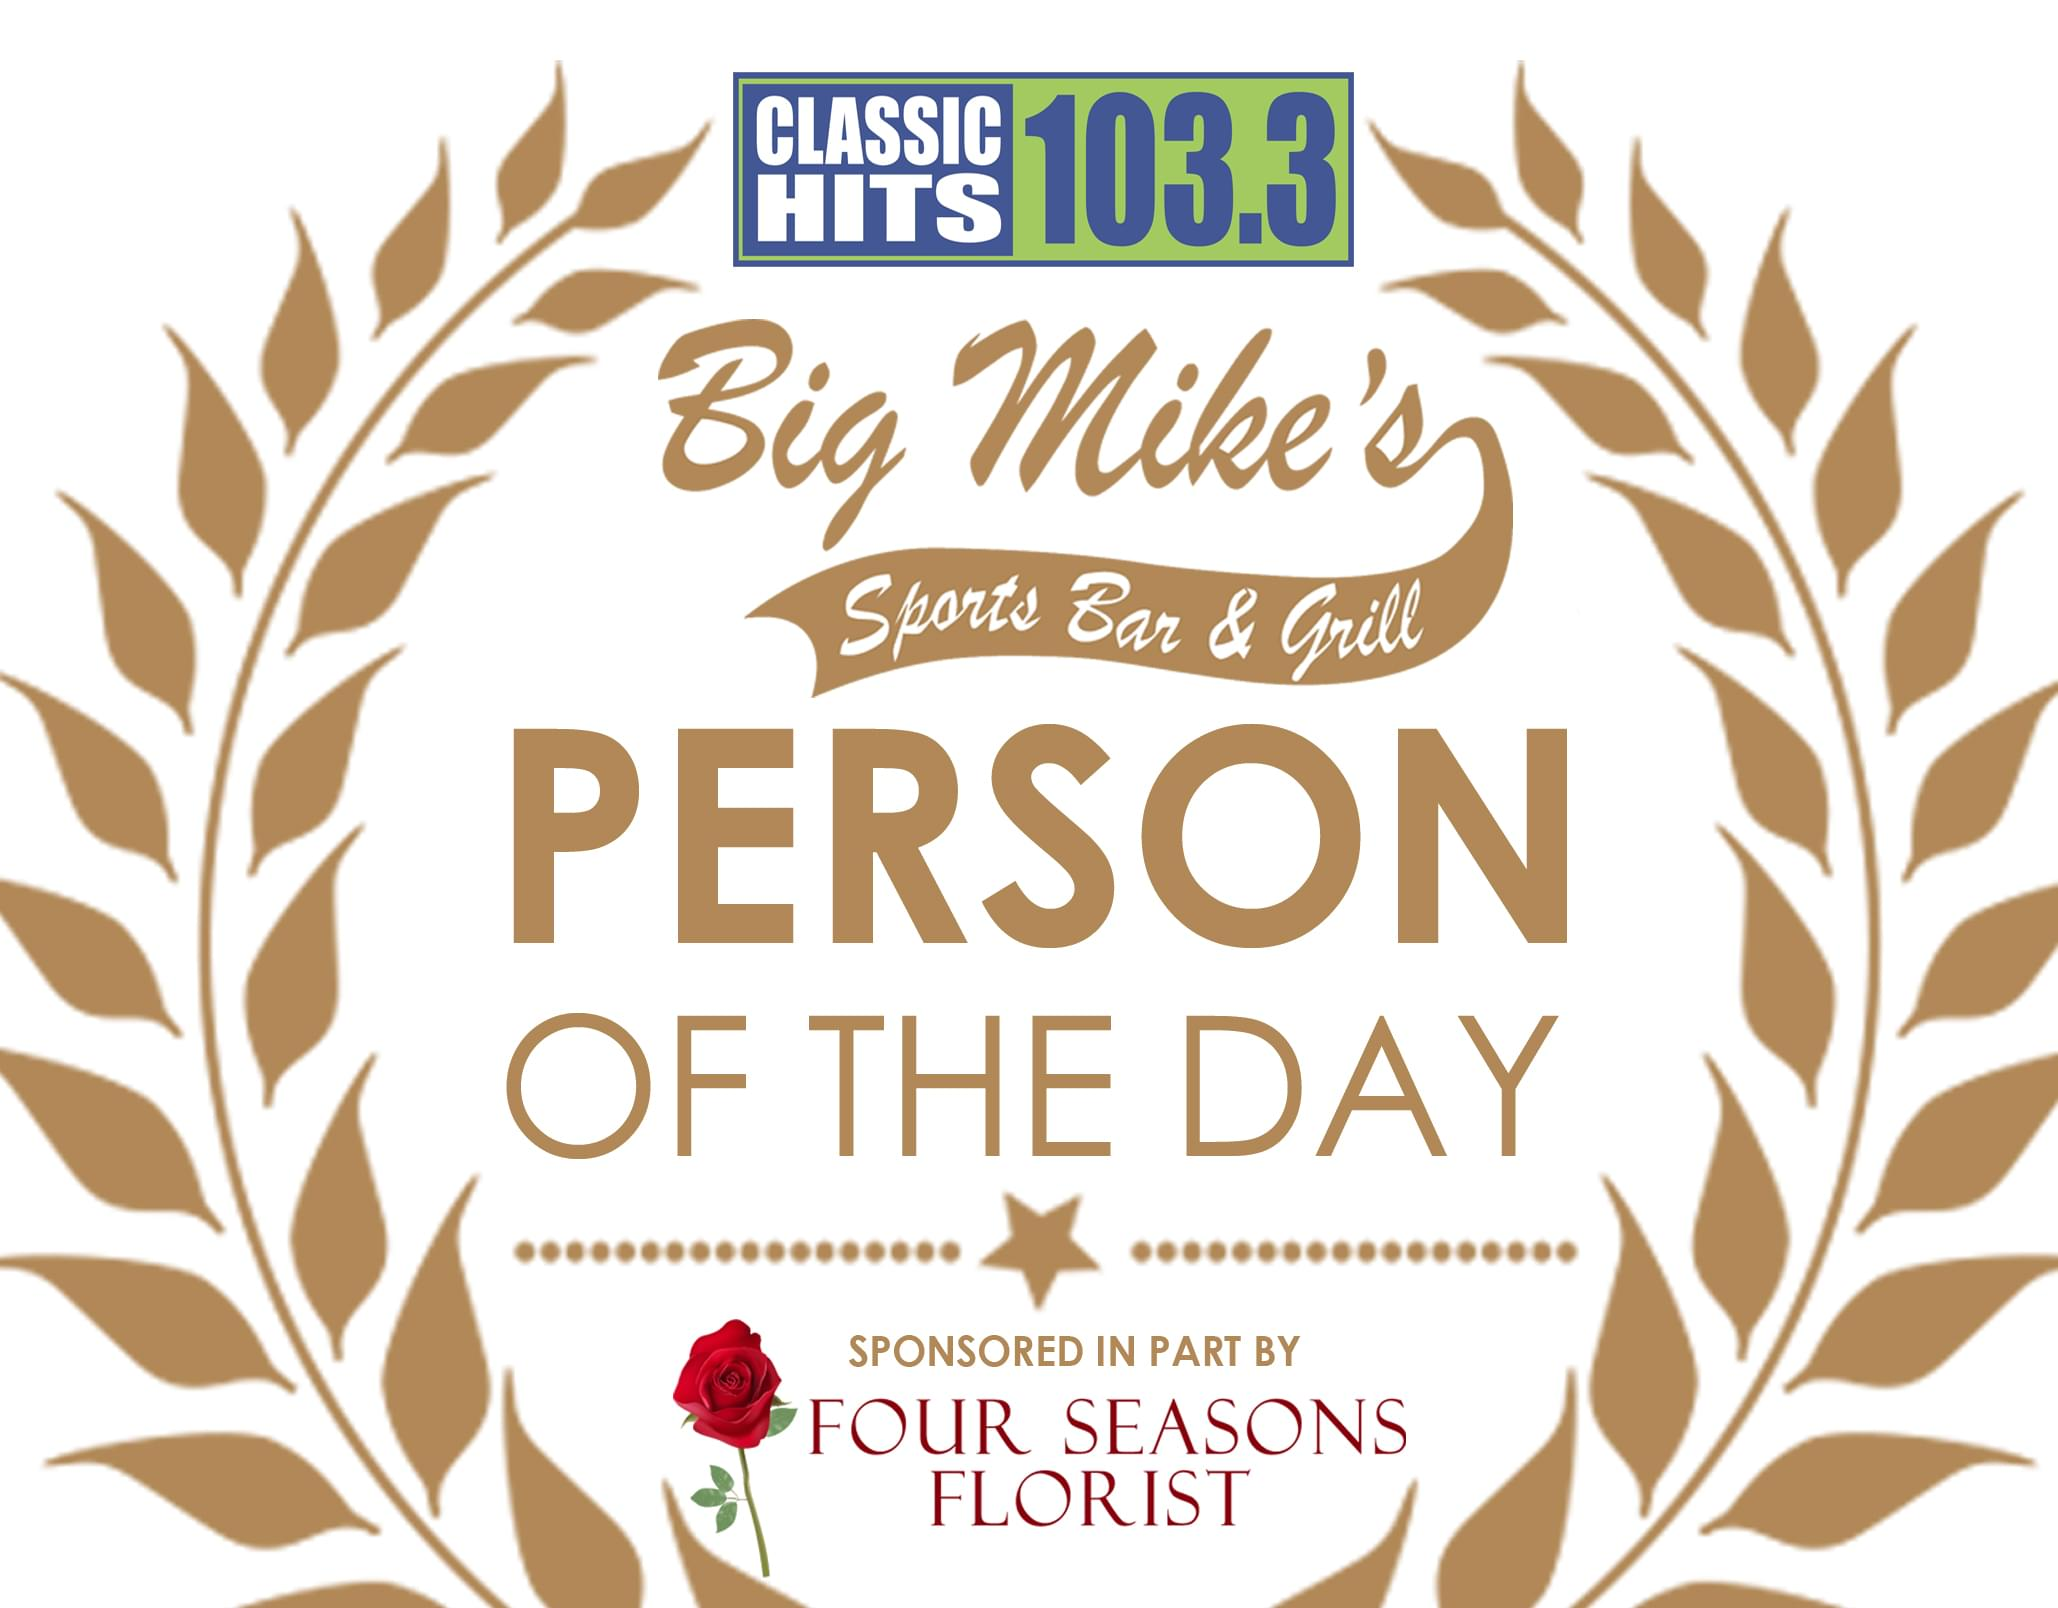 Classic Hits 103.3's Person of the Day